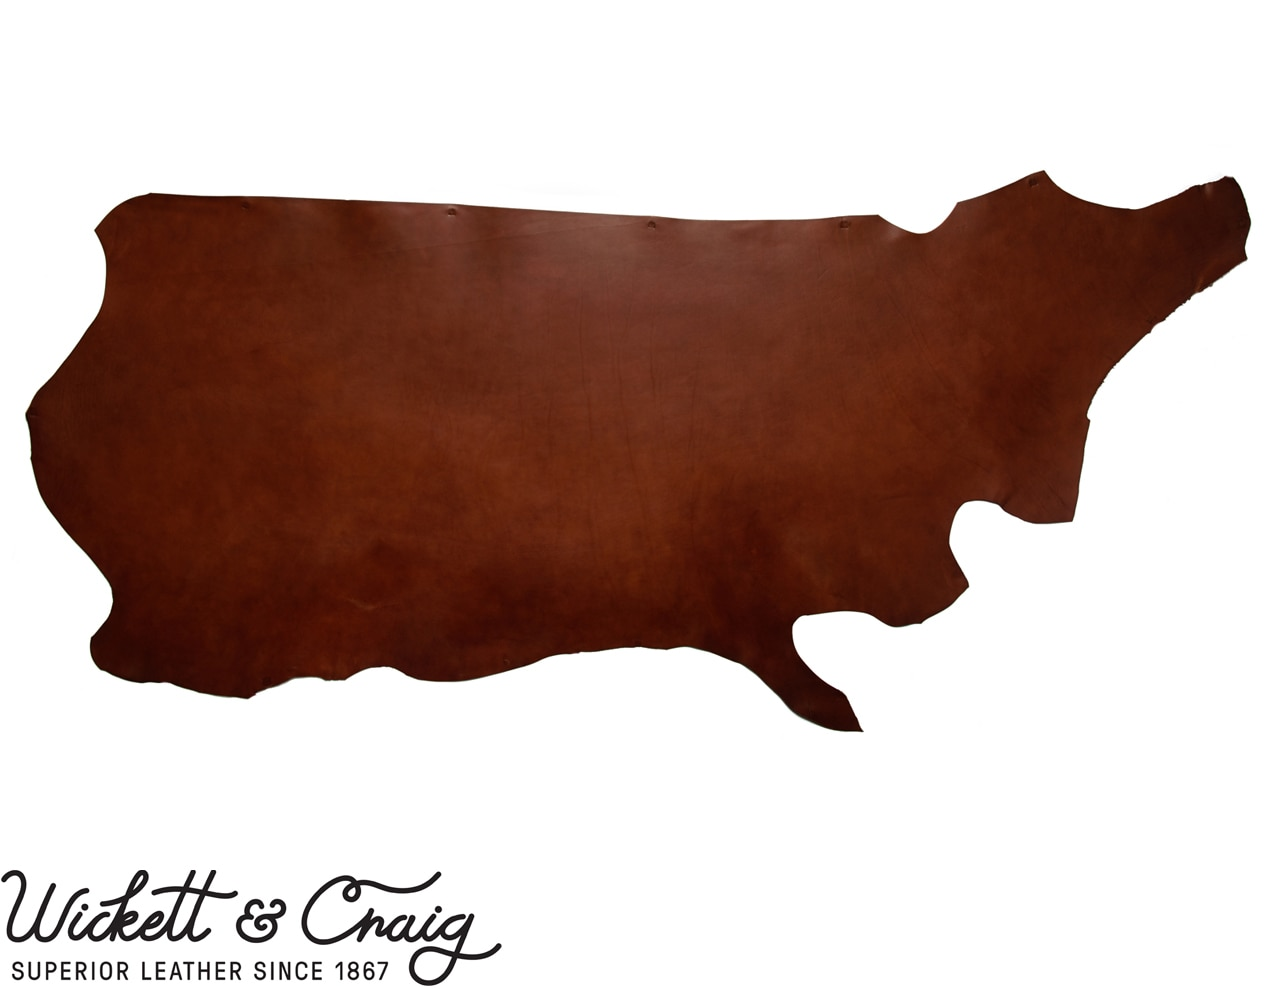 2 mm thick   BROWN  VEG TAN LEATHER SPANISH SHOULDER CHOOSE YOUR SIZE